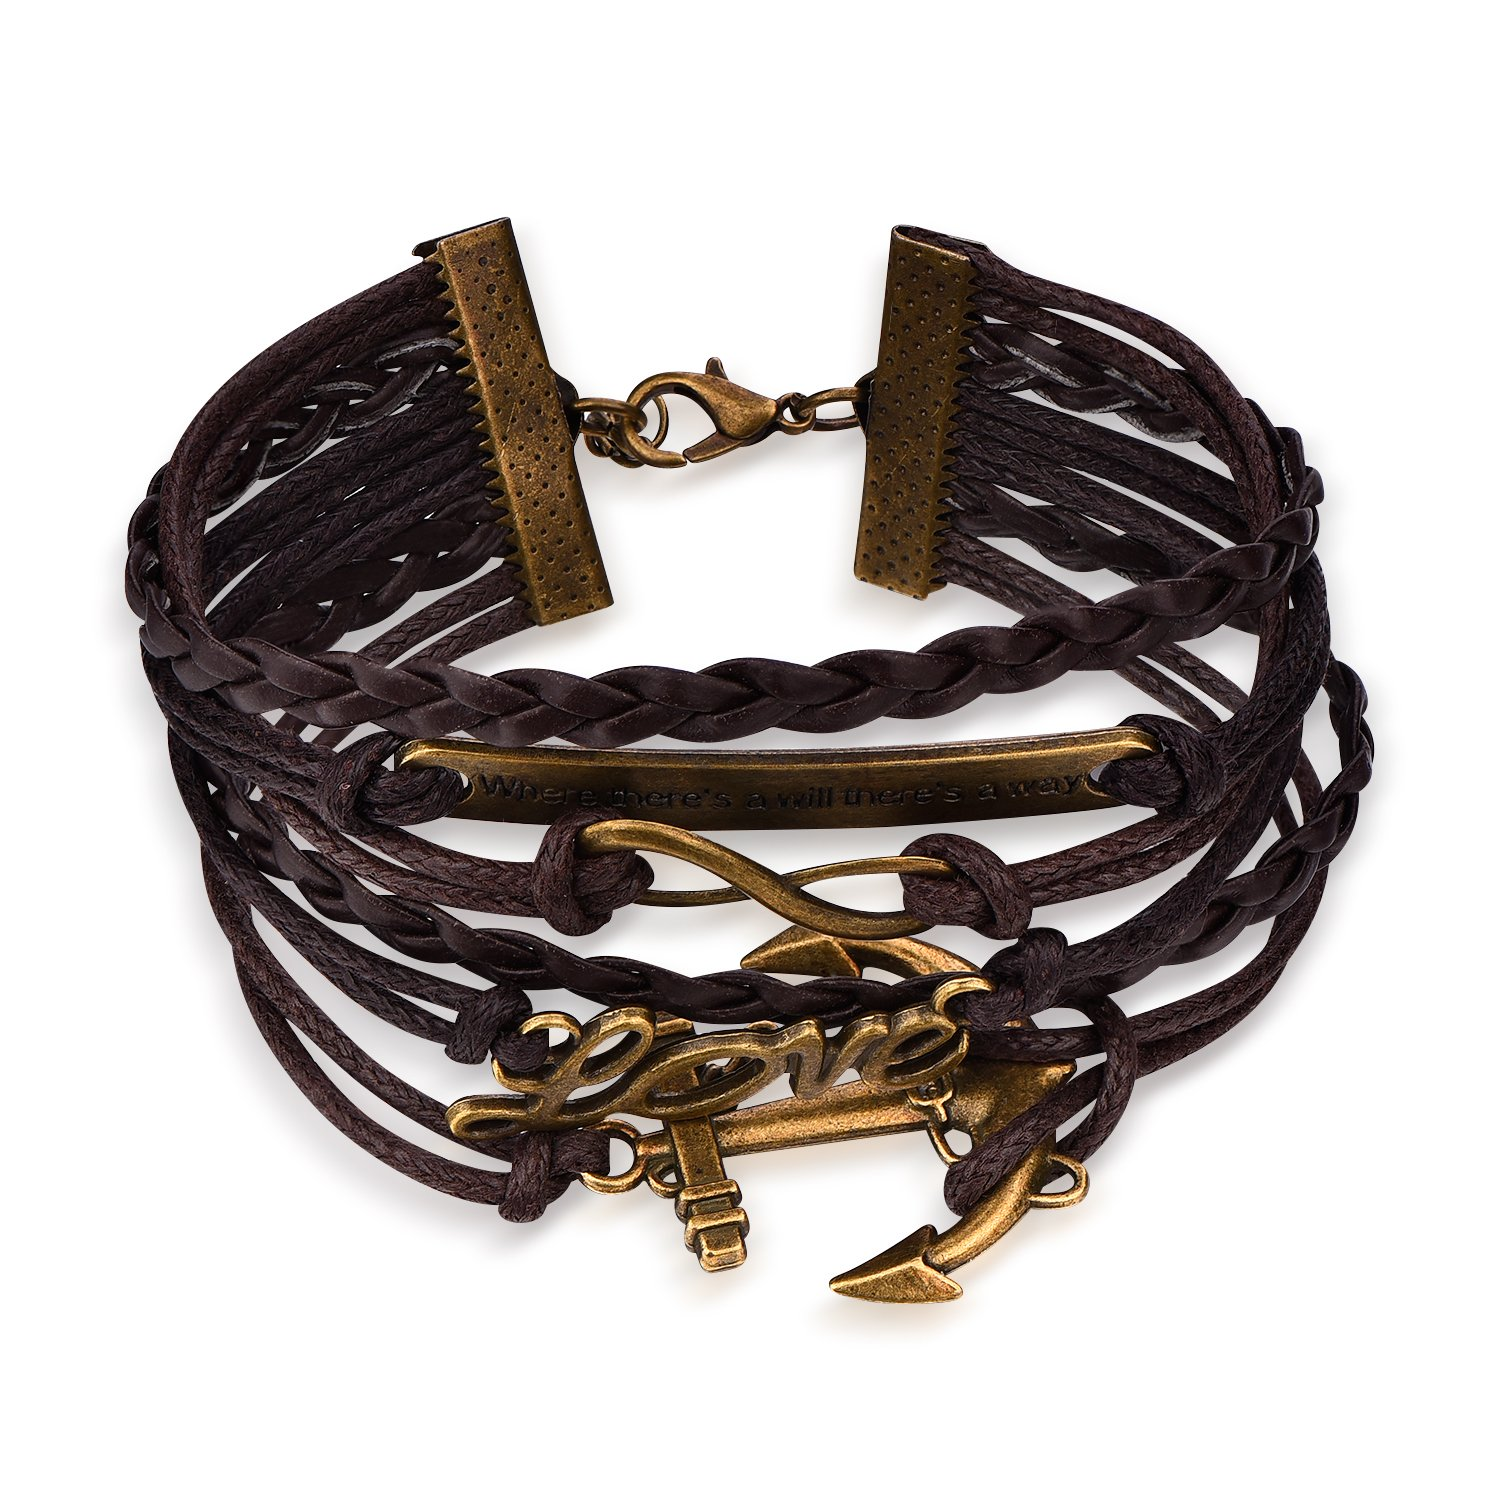 Boormanie Nautical Bracelet,Brass Infinity Love and Anchor Charm with Words Pendant Bracelet,Multi Strands Leather Bracelets Anchor Leather Wristband Bracelets